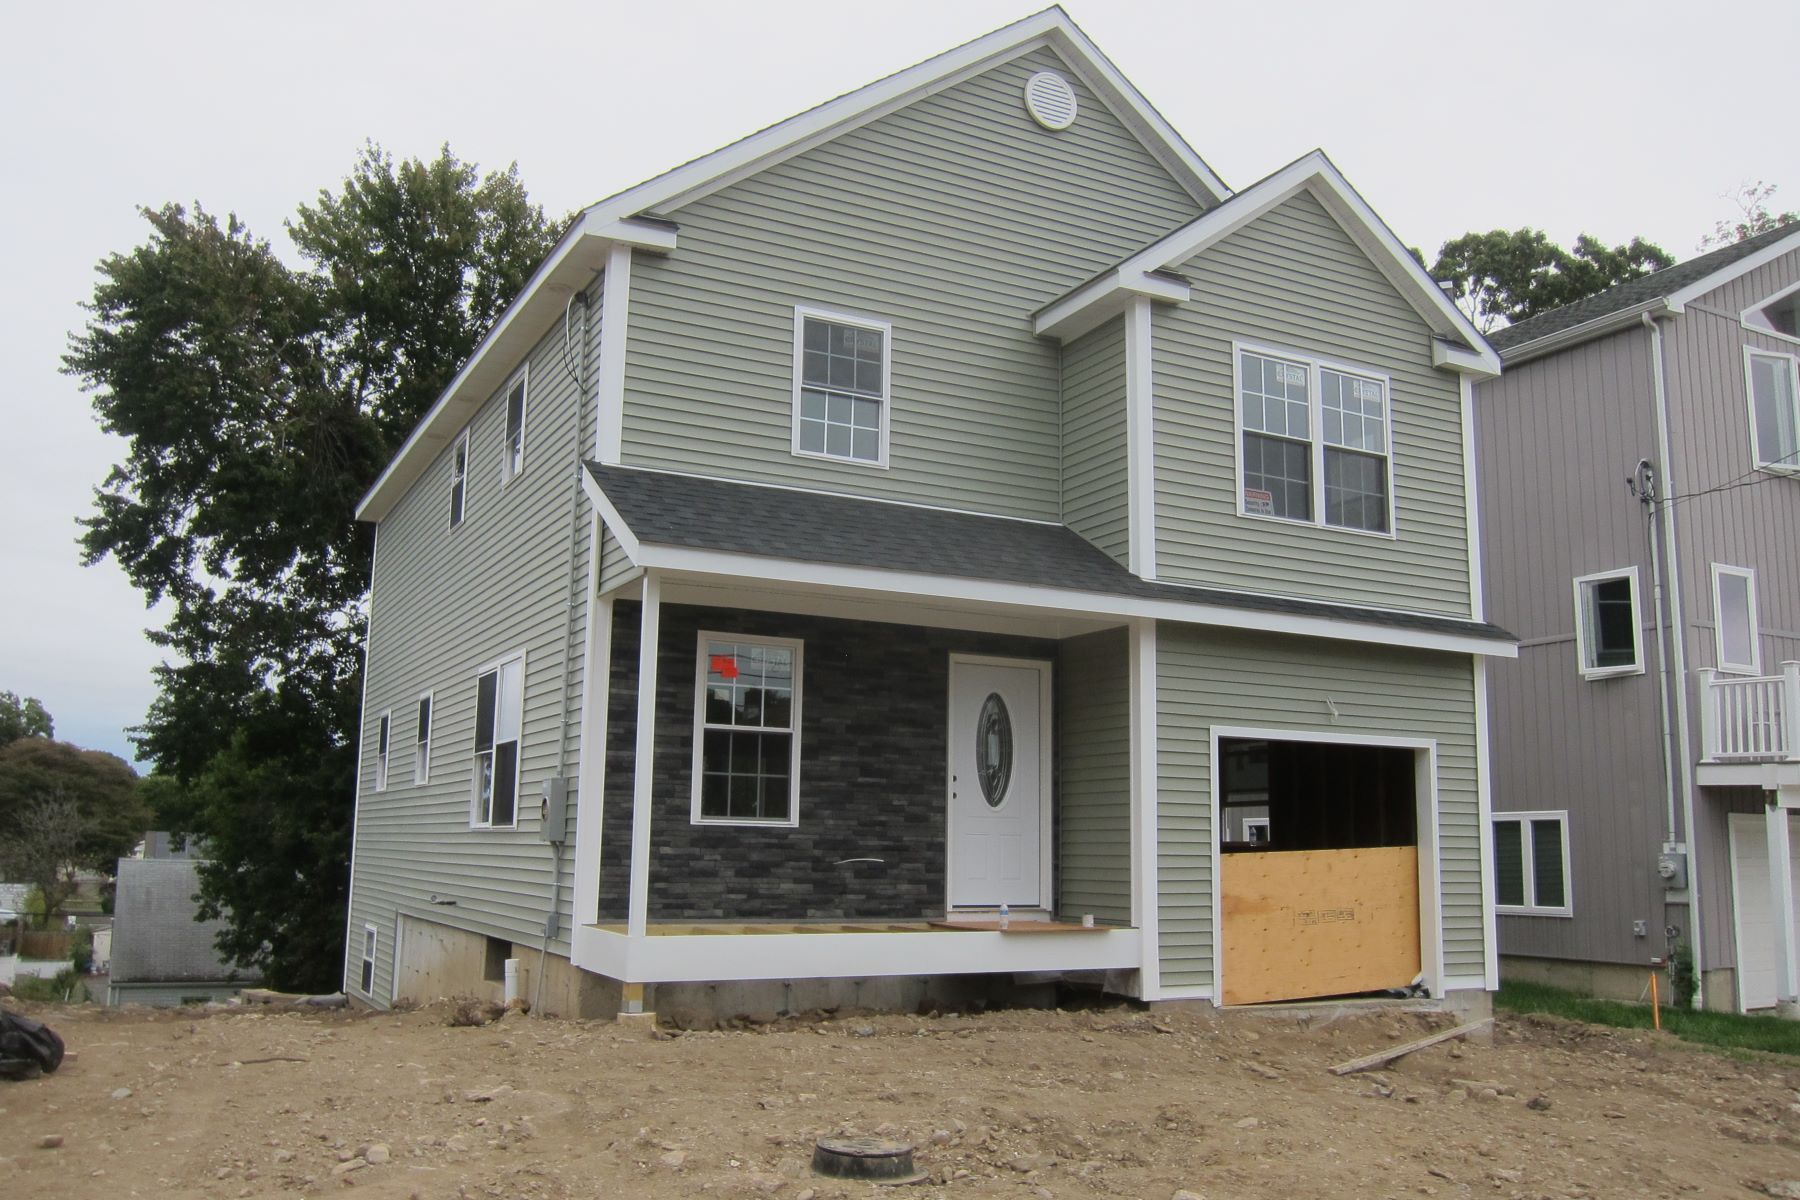 Single Family Homes for Active at Beautiful New Construction 28 Ondek Street Bridgeport, Connecticut 06610 United States